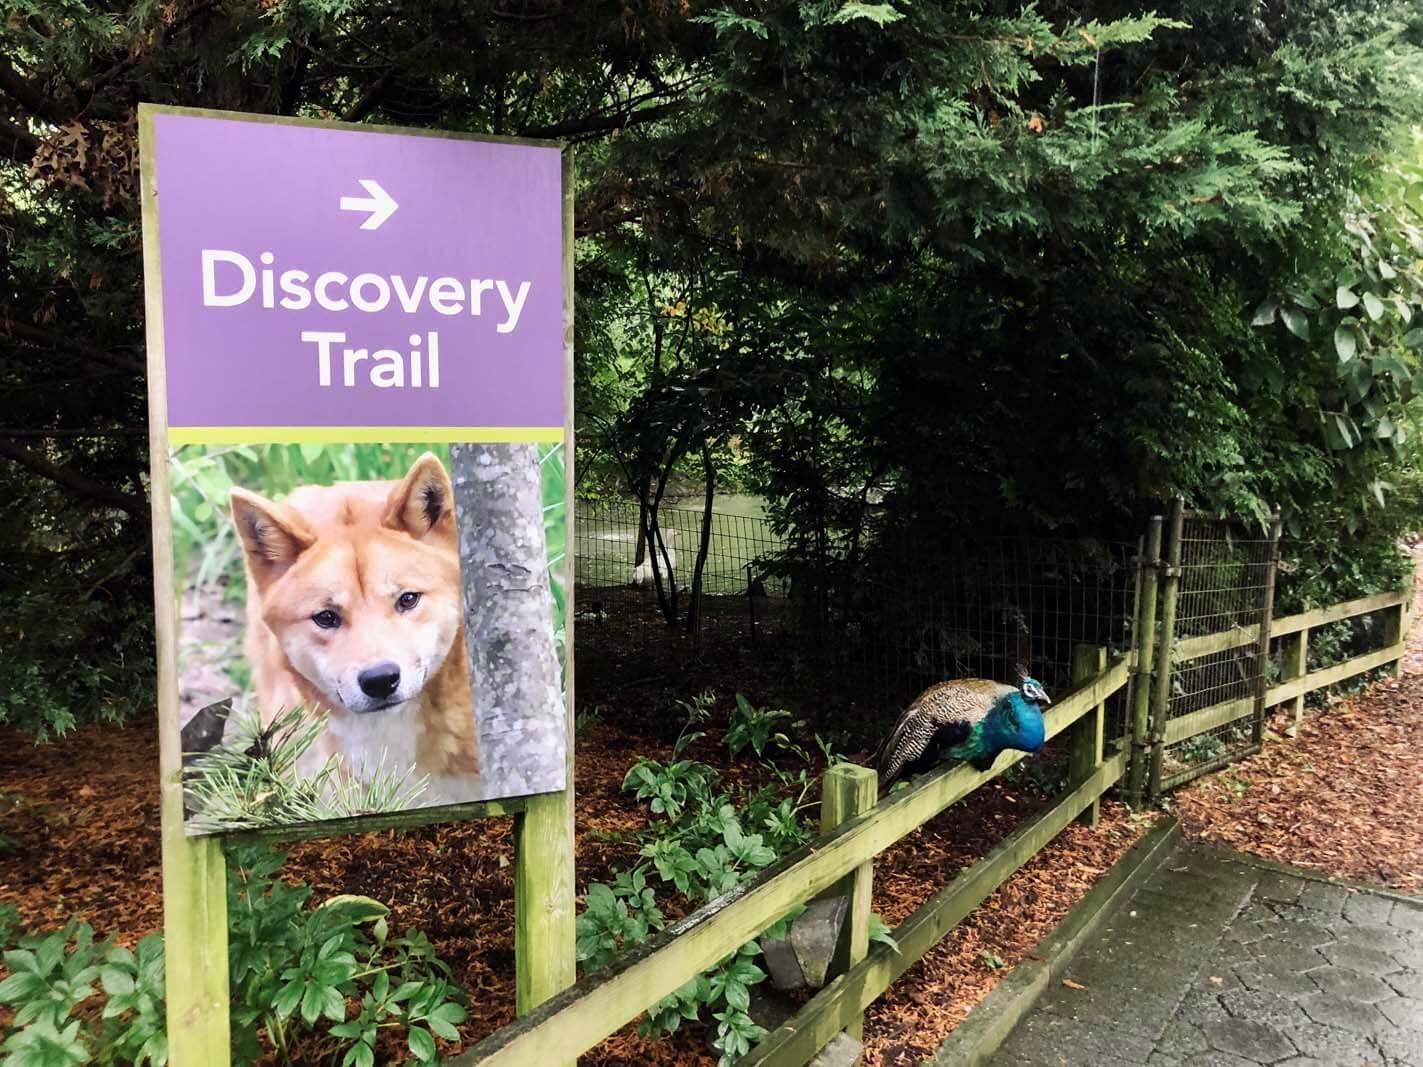 Discovery Trail Sign at Prospect Park Zoo